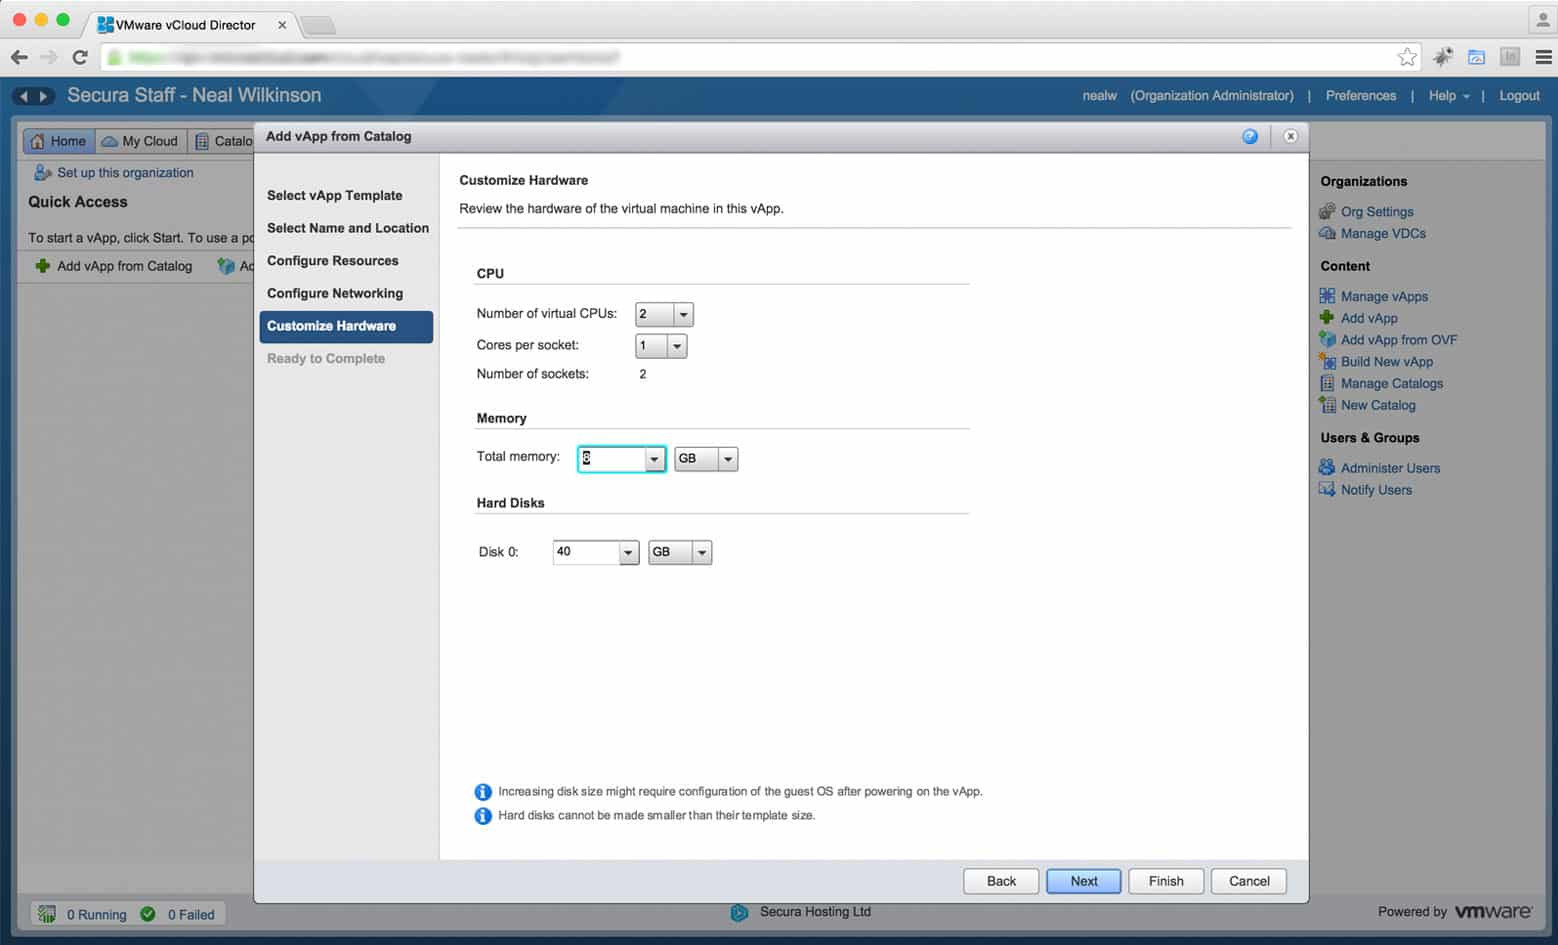 Configure the VMs Resource Levels